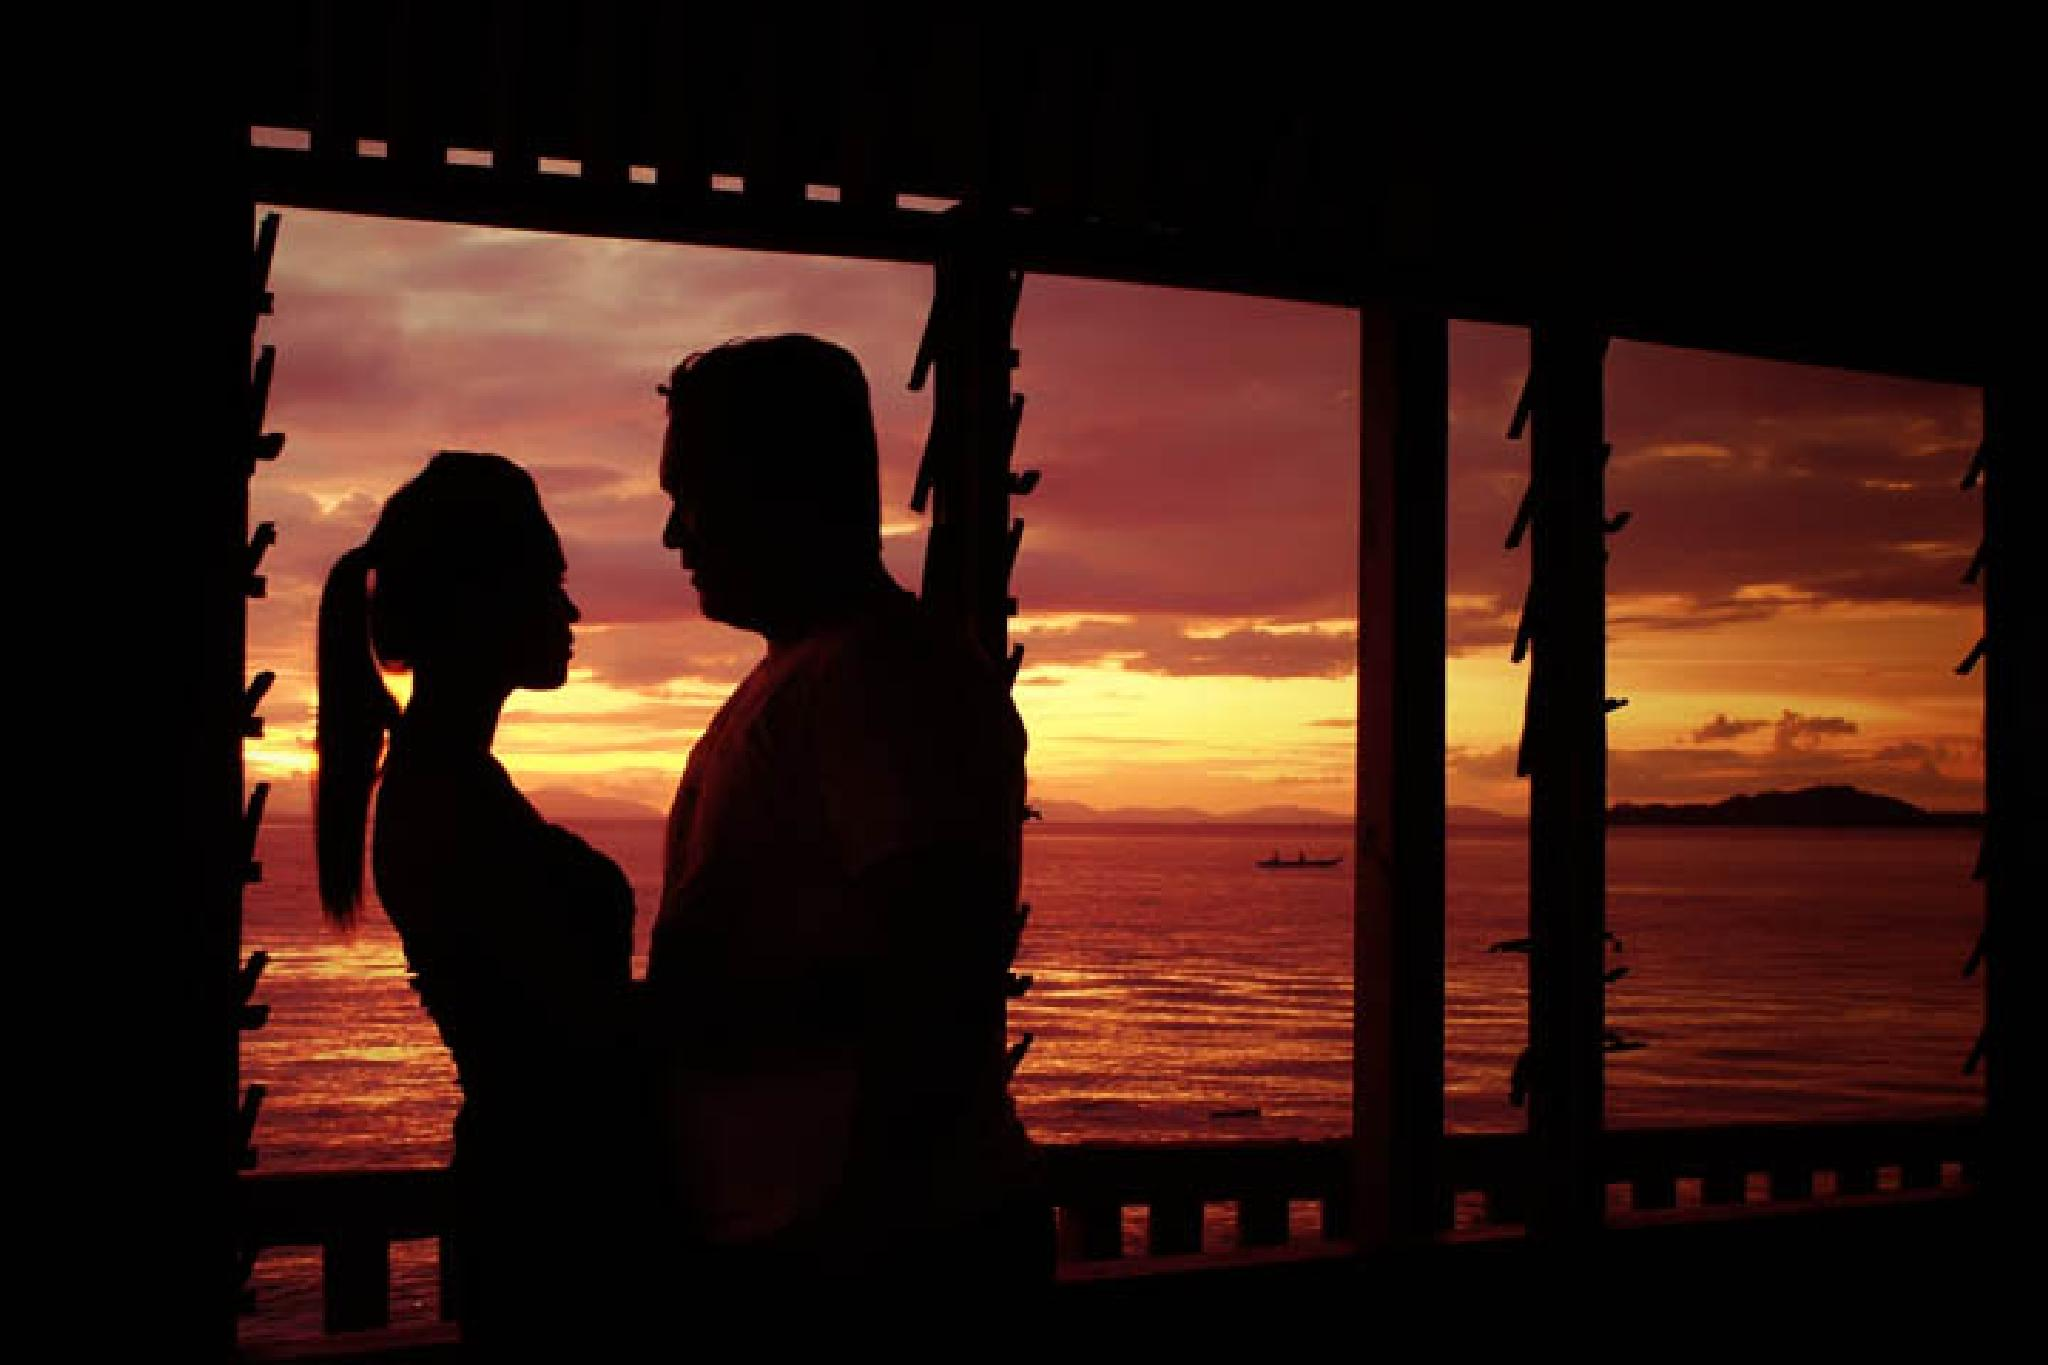 Silhuette Prewedding by Hamzah Zain